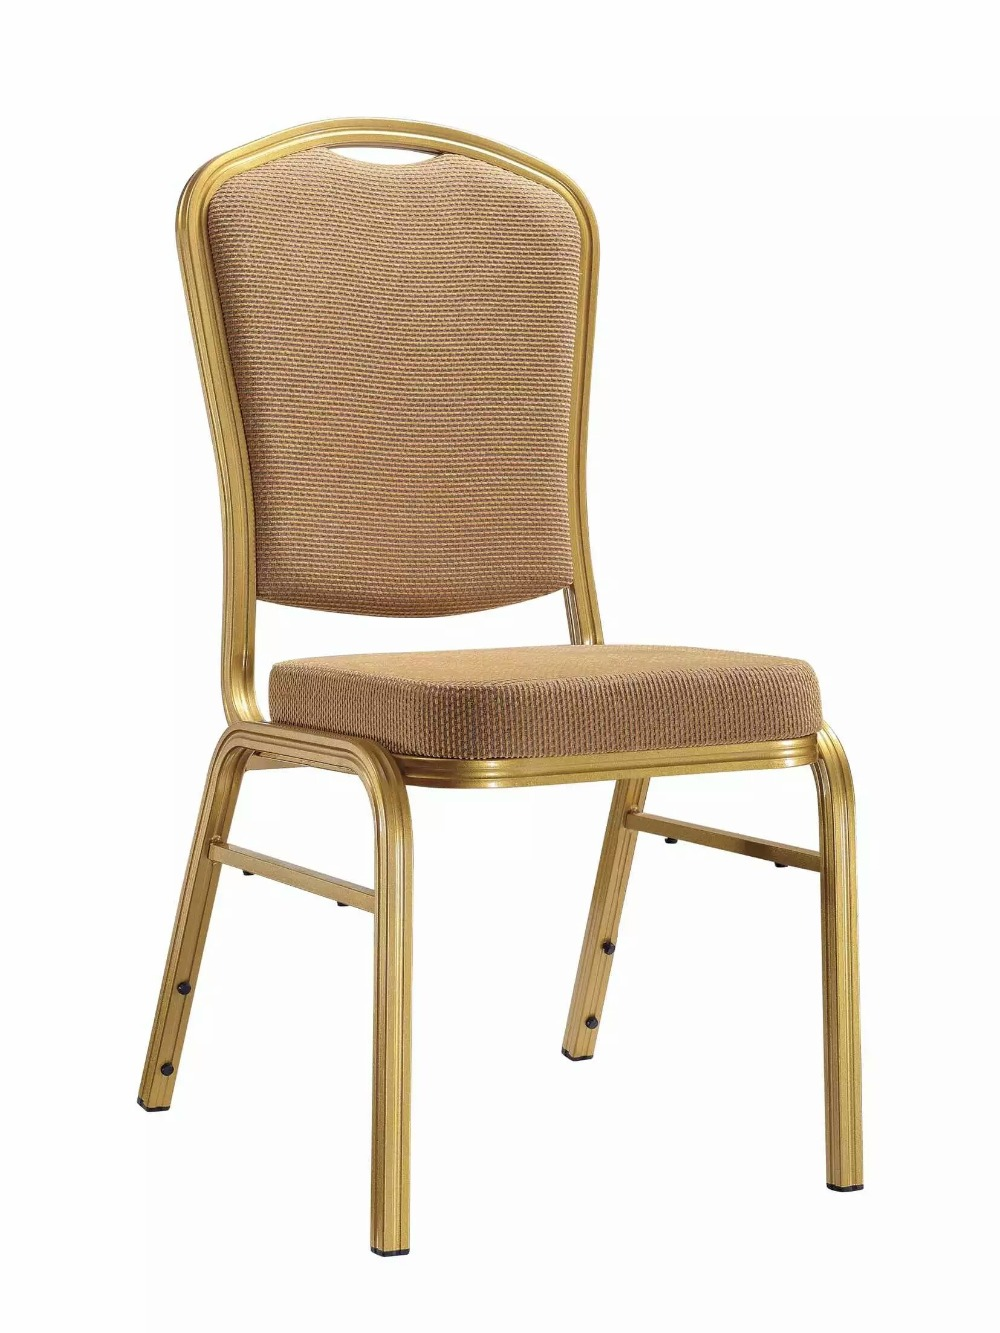 Us 17 0 Restaurant Chairs Metal Banquet Chair Stackable Chairs 5pc Carton In Hotel Chairs From Furniture On Aliexpress